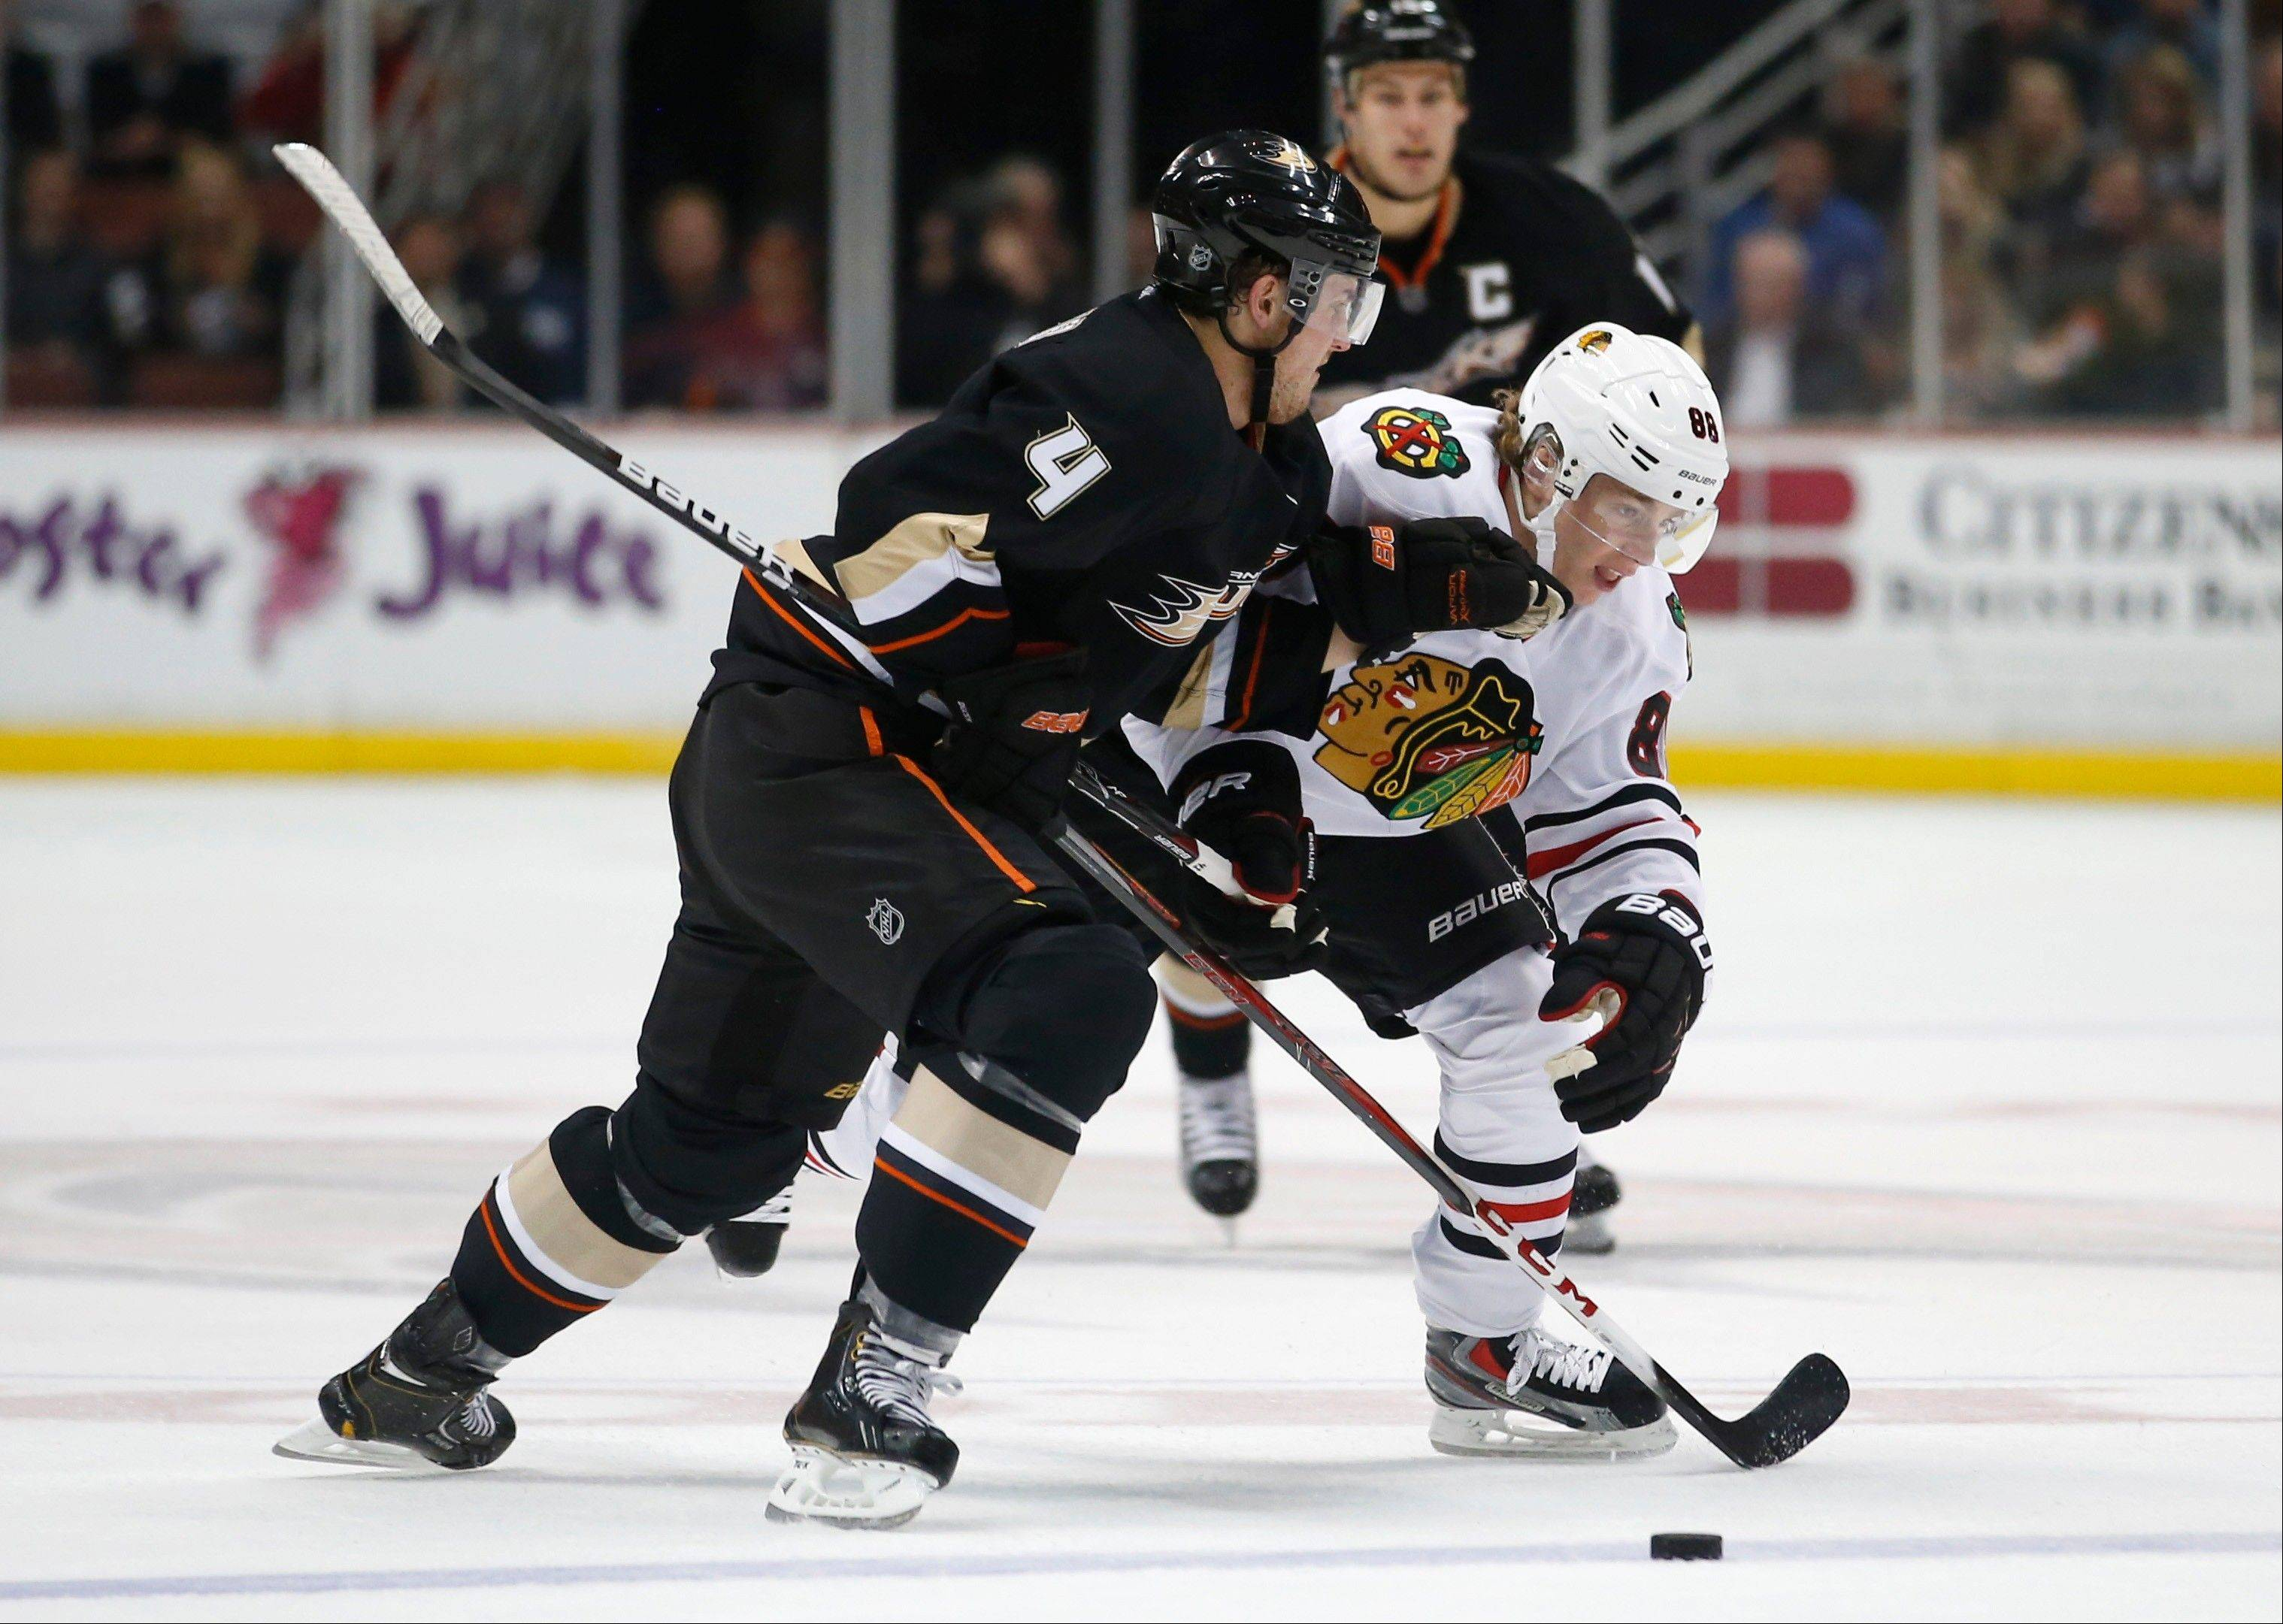 Chicago Blackhawks' Patrick Kane, right, is defended by Anaheim Ducks' Cam Fowler during the first period.